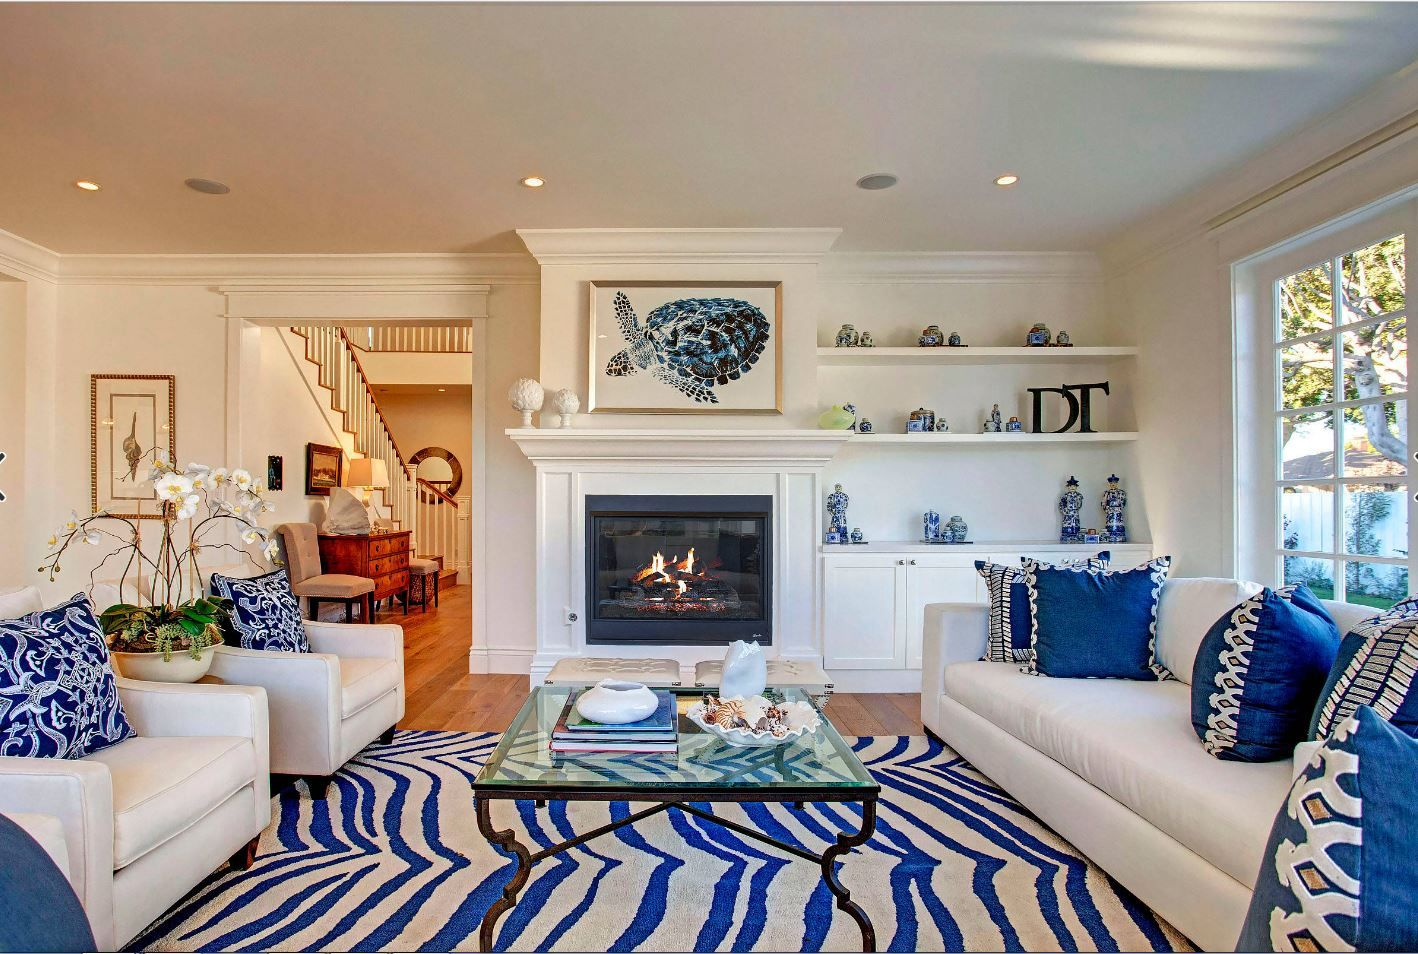 Off Center Fireplace Ideas Luxury Living Room Coastal Living Rooms Fireplace Design #picture #of #living #room #with #fireplace